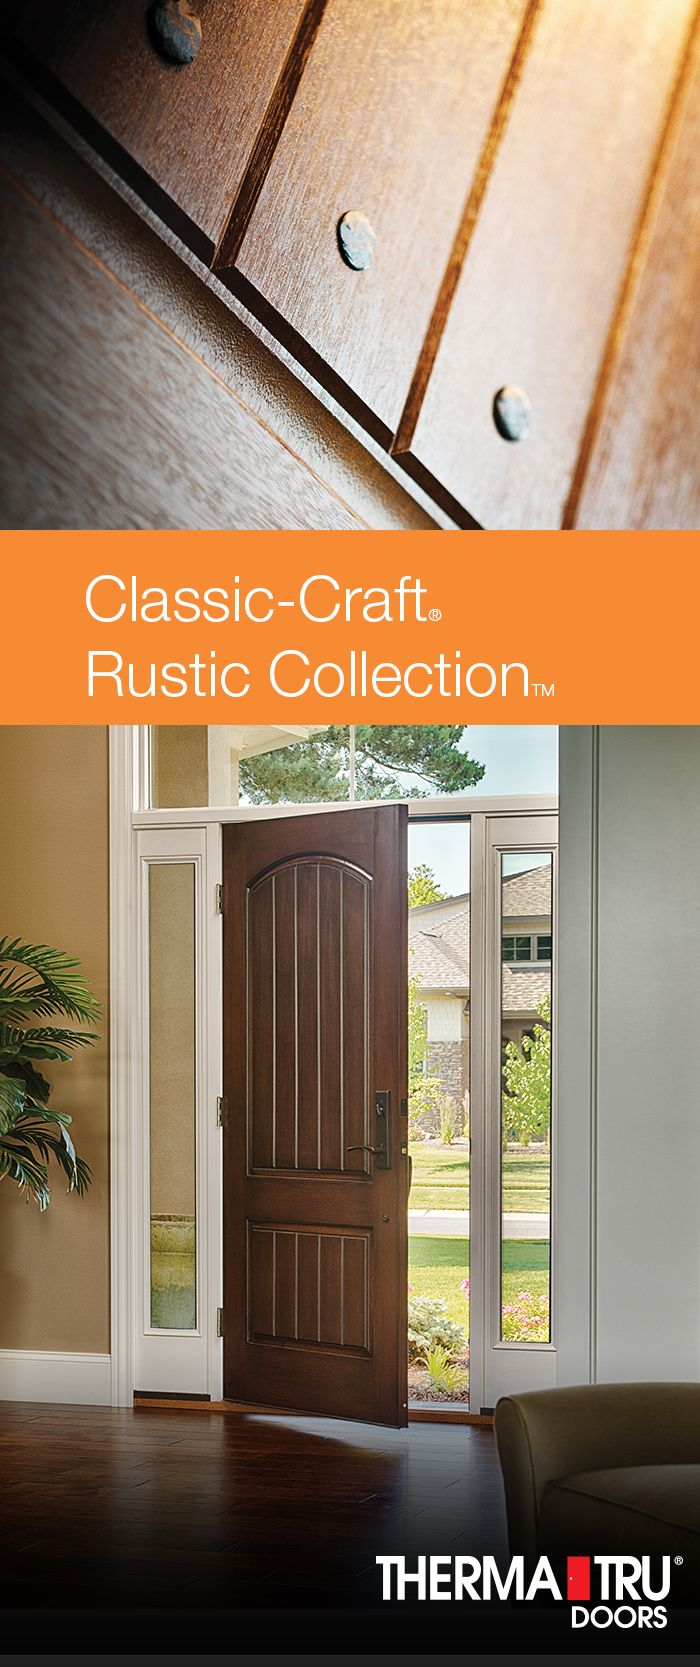 Classic craft rustic collection premium fiberglass doors for Therma tru classic craft american style collection